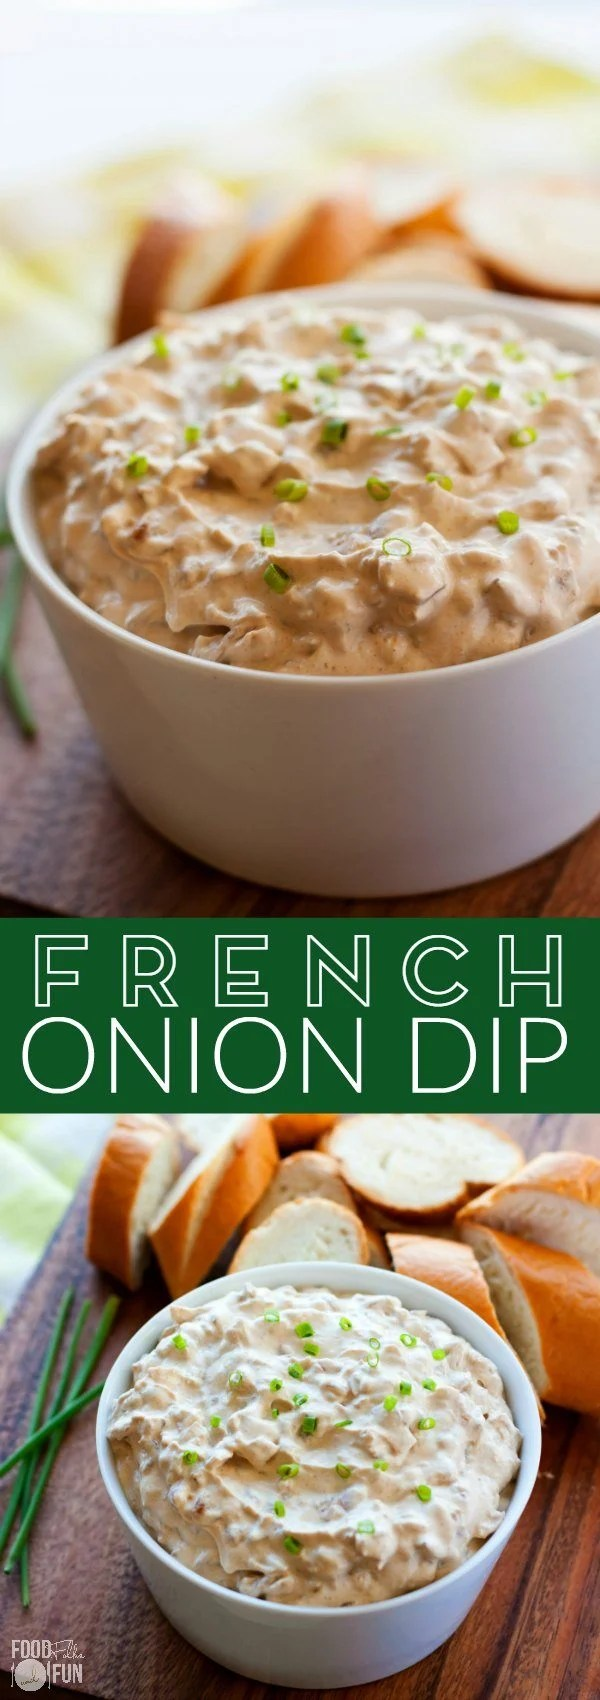 Picture collage of the French Onion Dip recipe